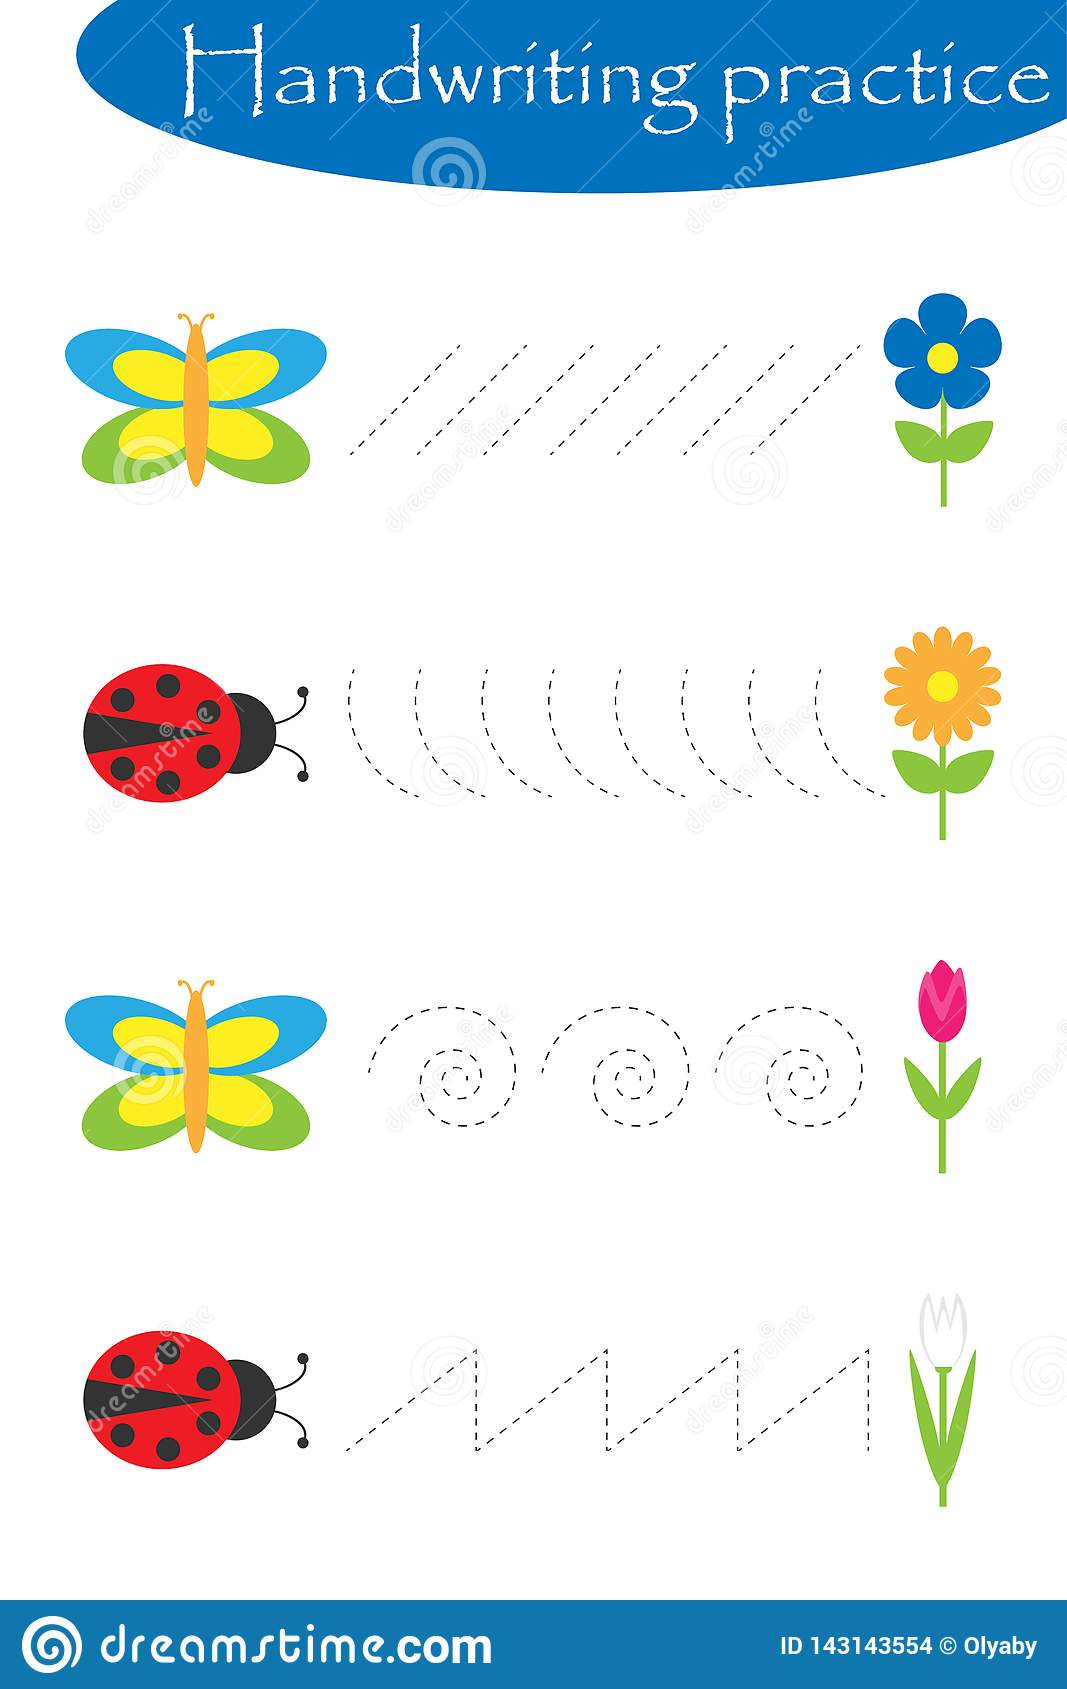 Butterflies And Ladybugs Spring Handwriting Practice